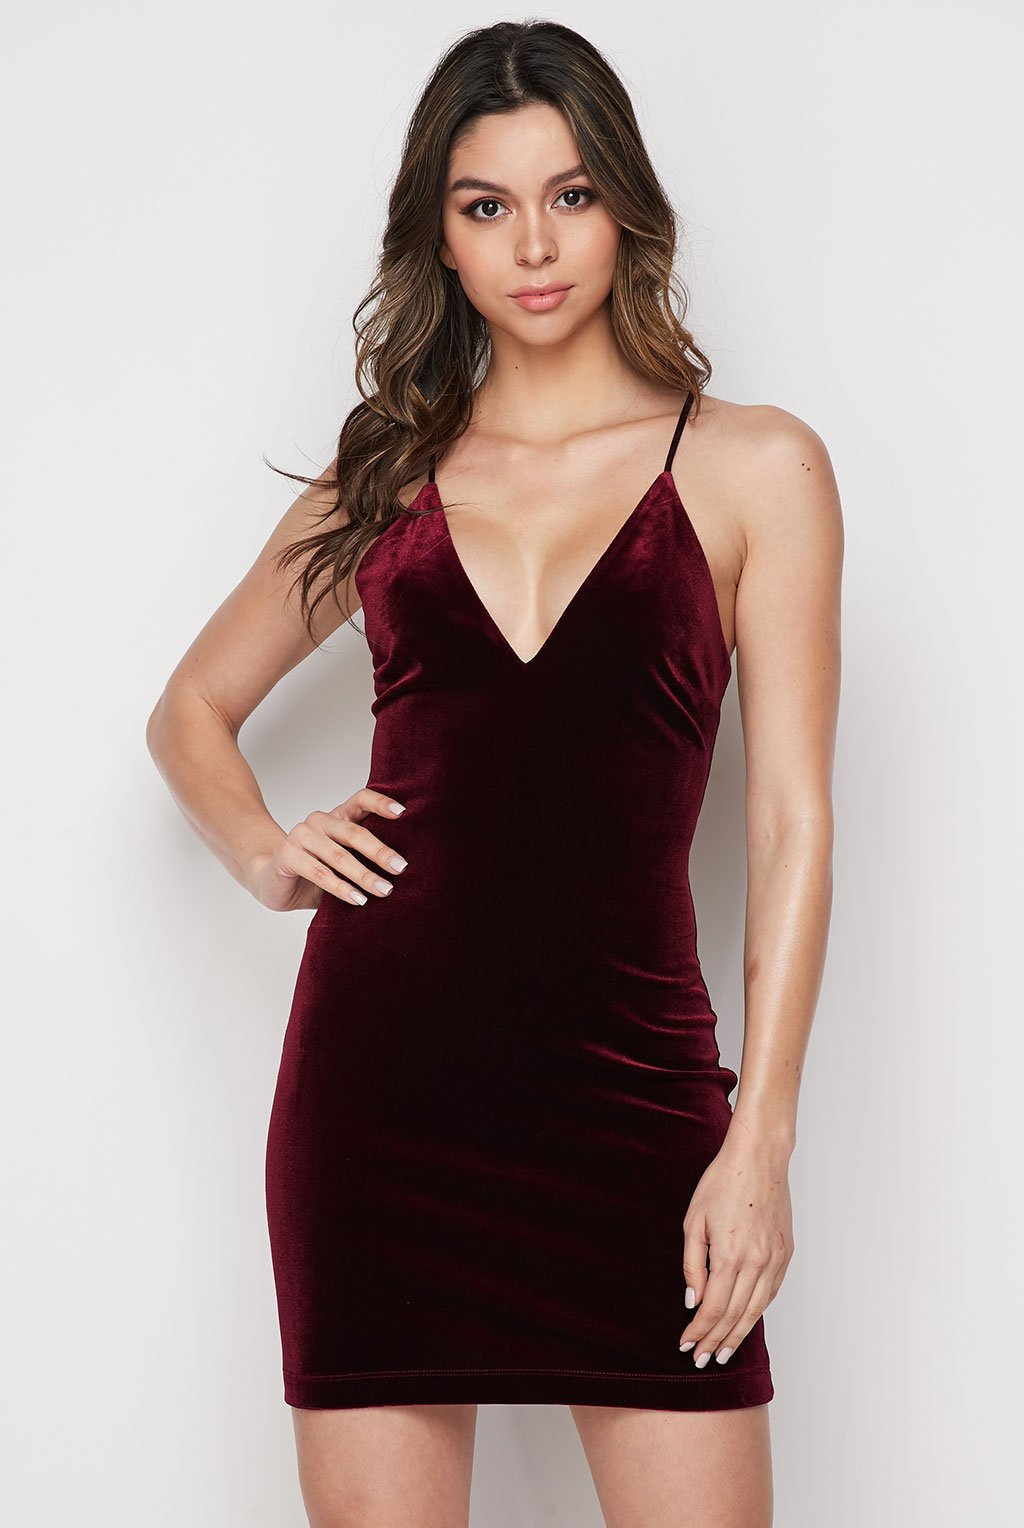 Teeze Me | Sleeveless Spaghetti Strap Deep V Neck Bodycon Dress  | Burgundy